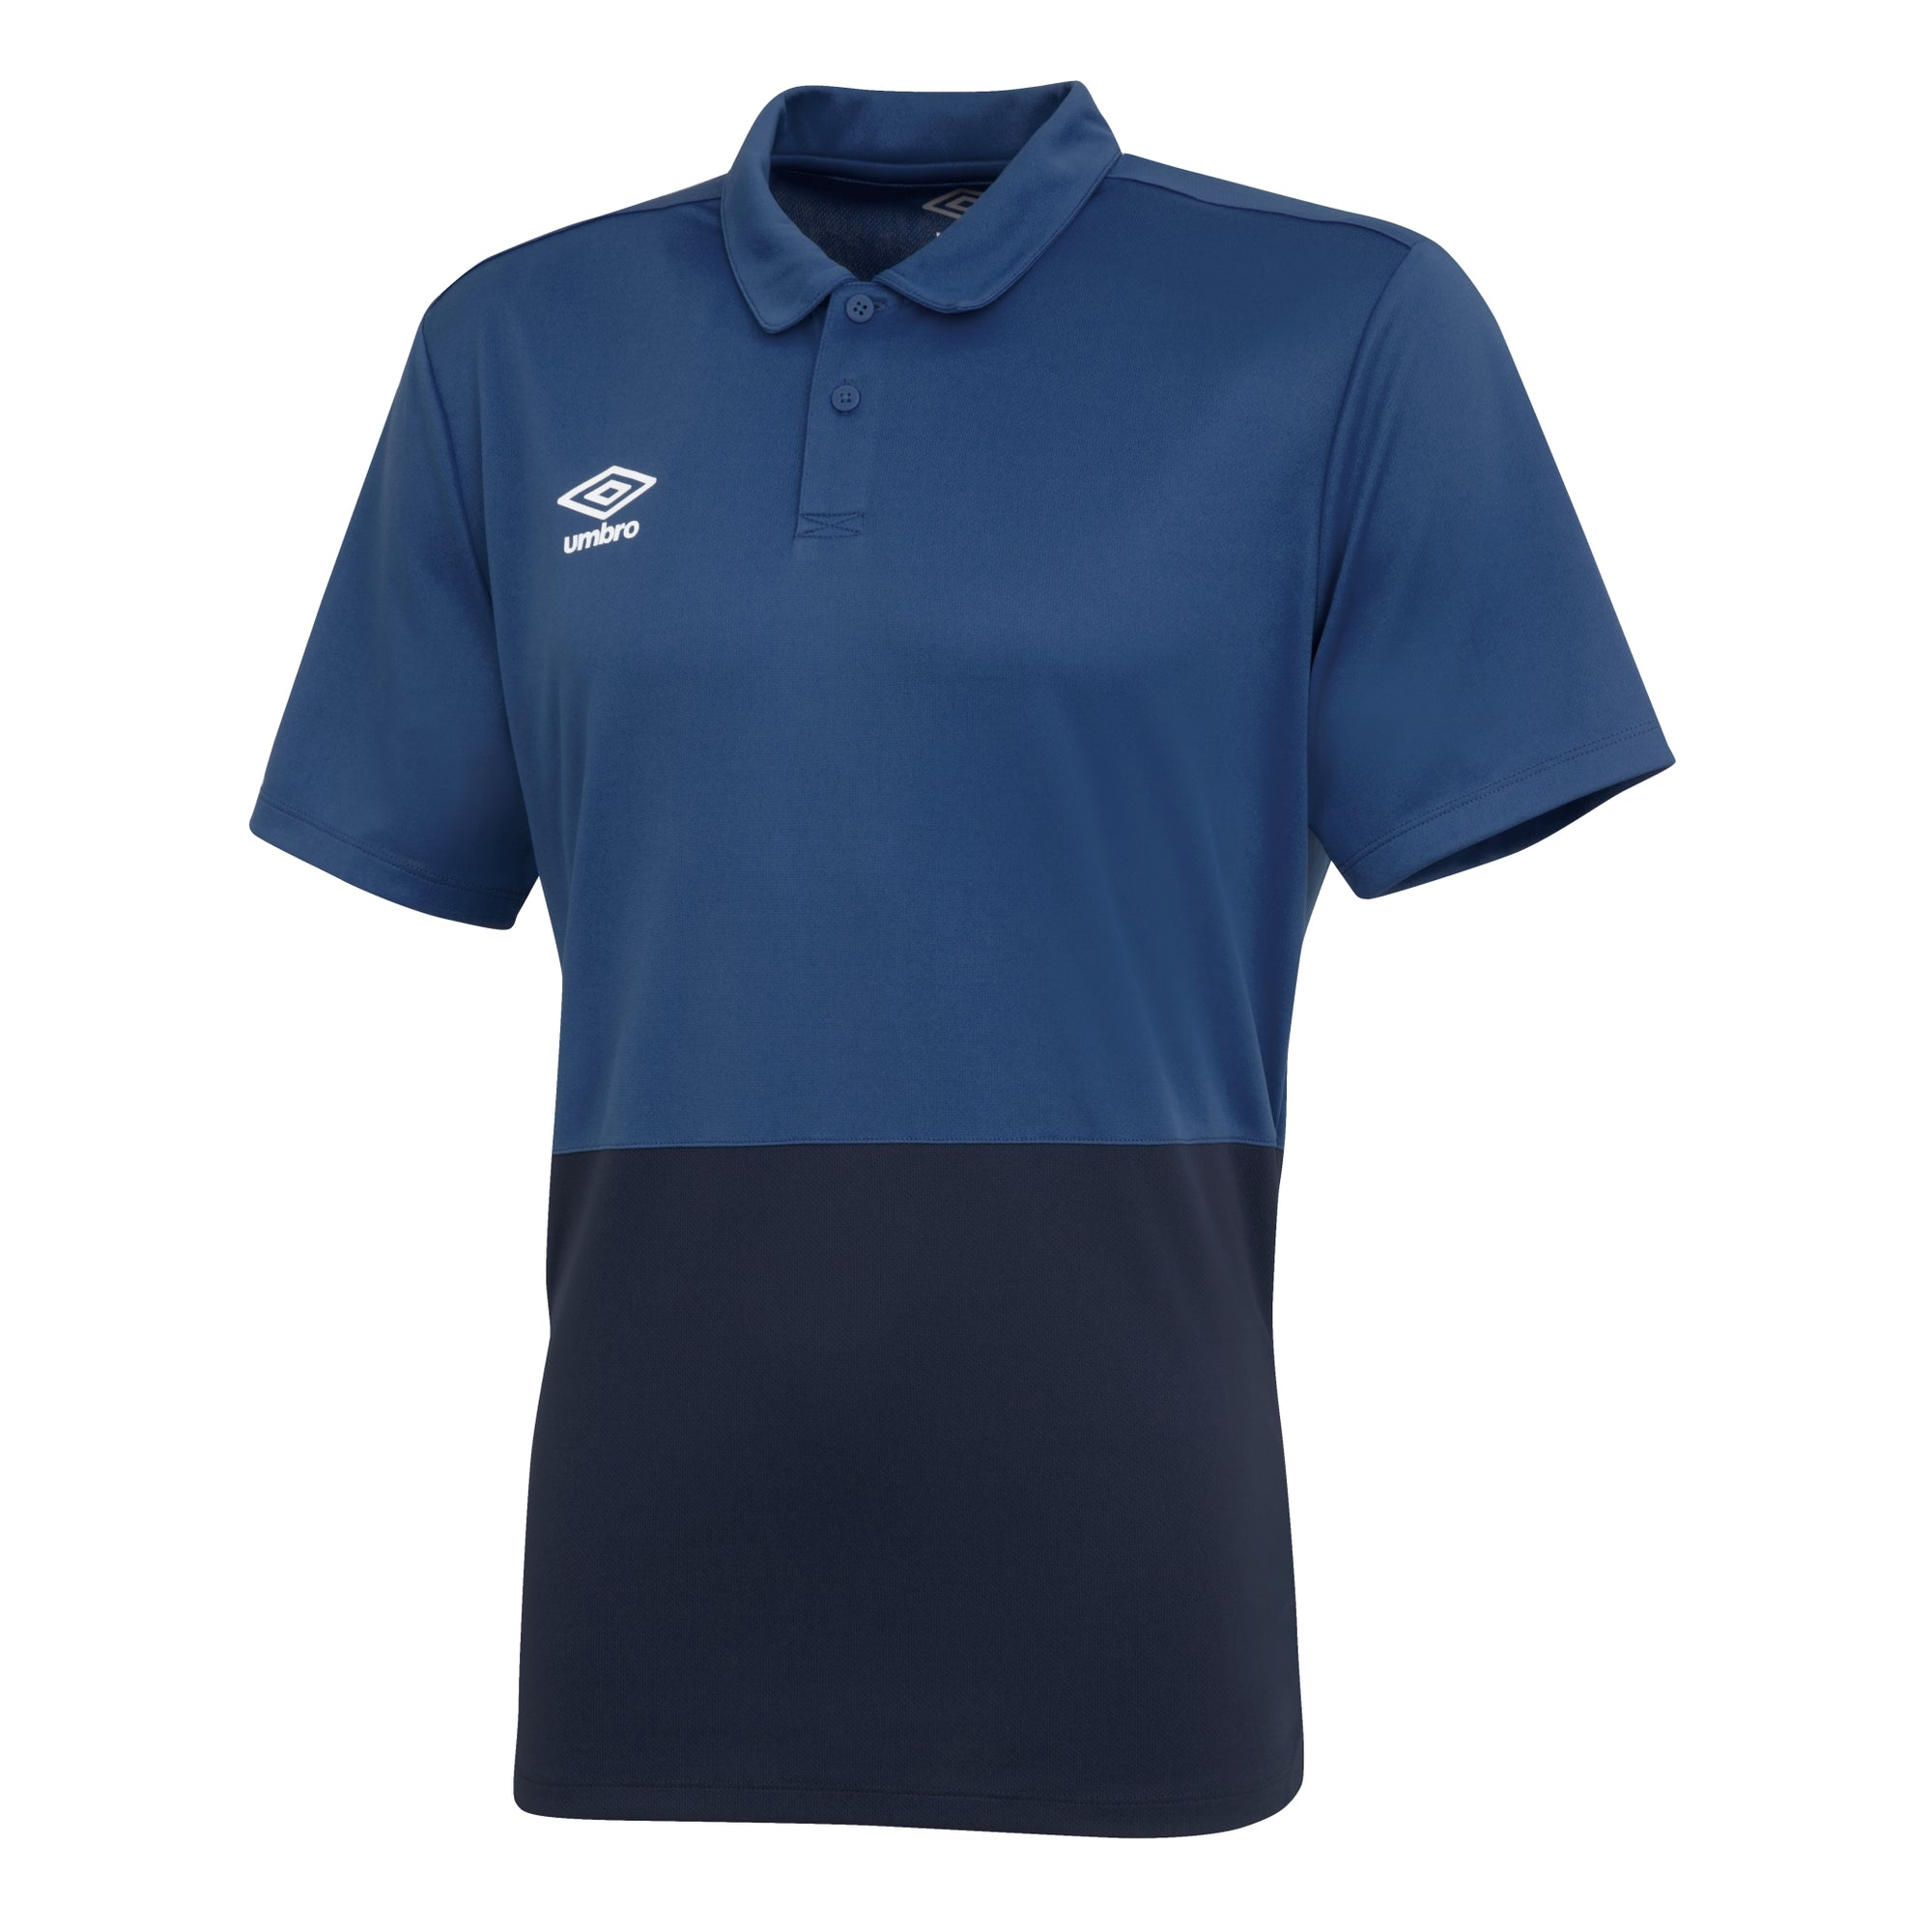 Umbro Poly Polo - Navy/Dark Navy/White